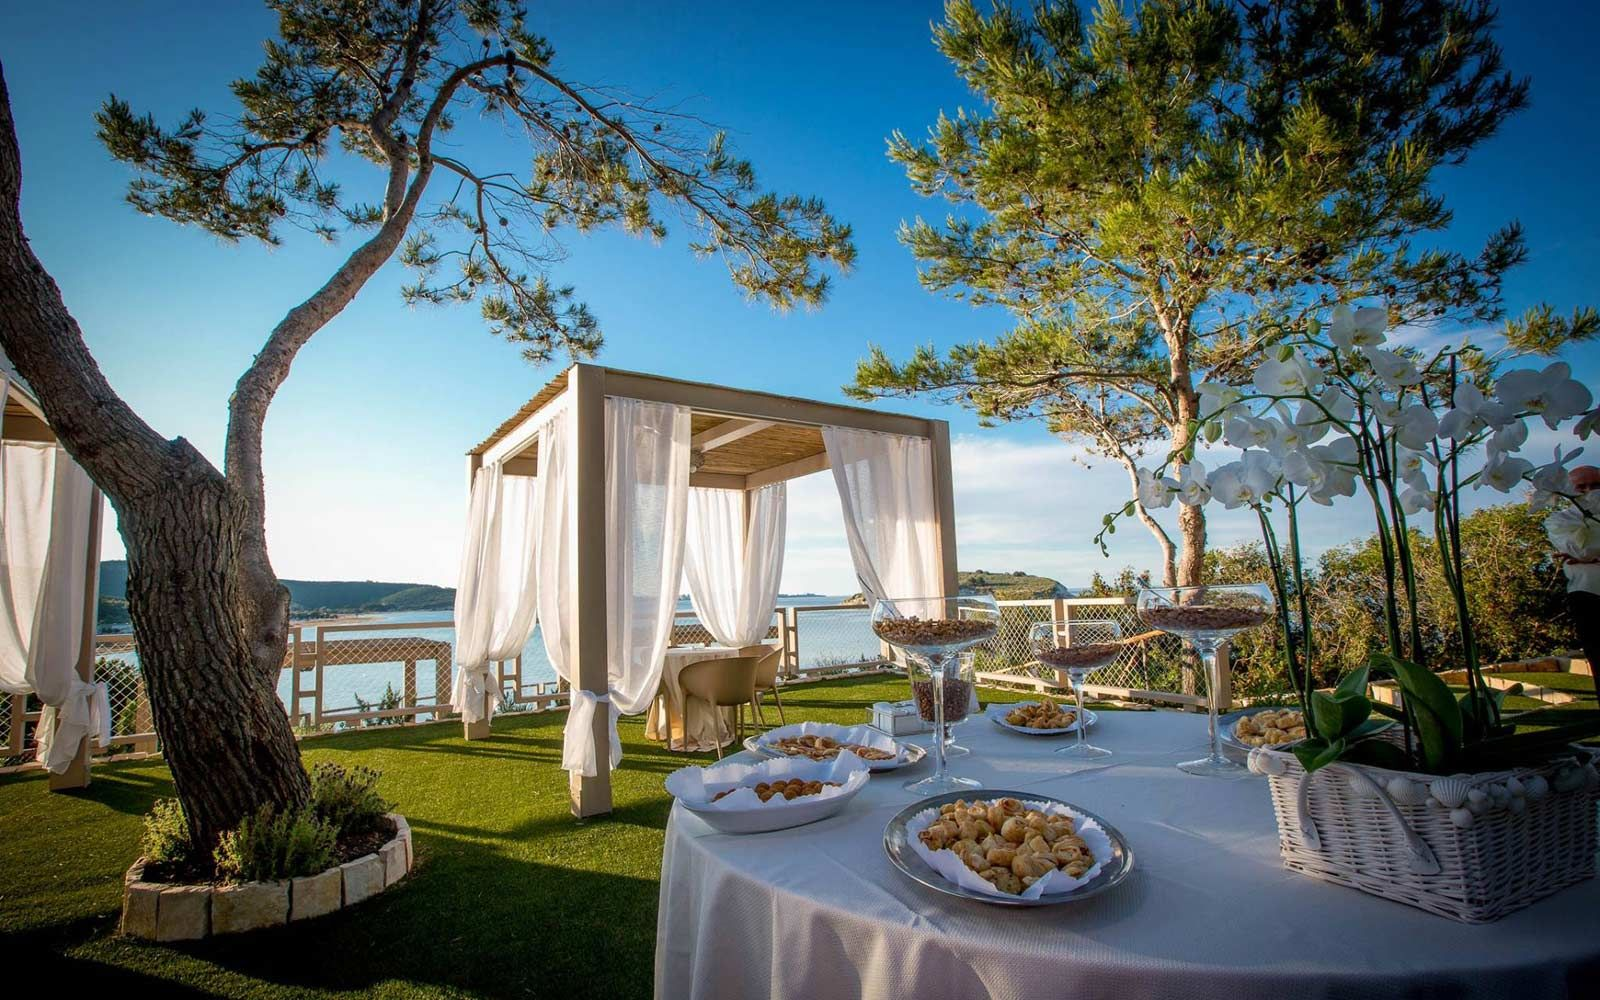 Best Hotel in Apulia www.allinitalian.com